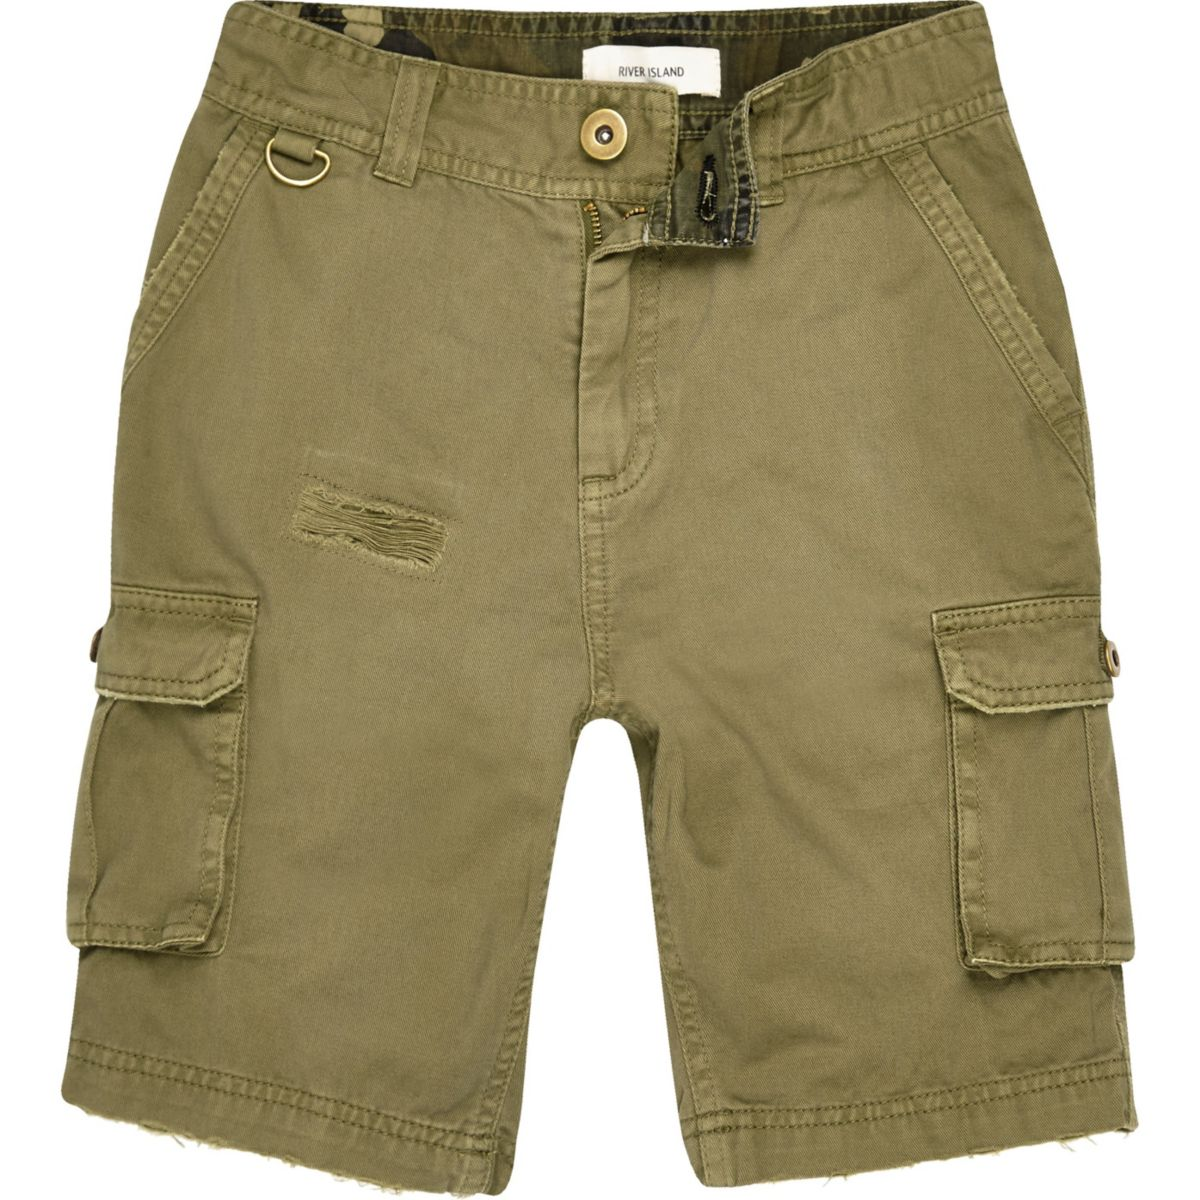 5 Boys' Shorts and Boys' Cargo Shorts at Macy's come in a variety of styles and sizes. Shop 5 Boys' Shorts at Macy's and find the latest styles for your little one today.